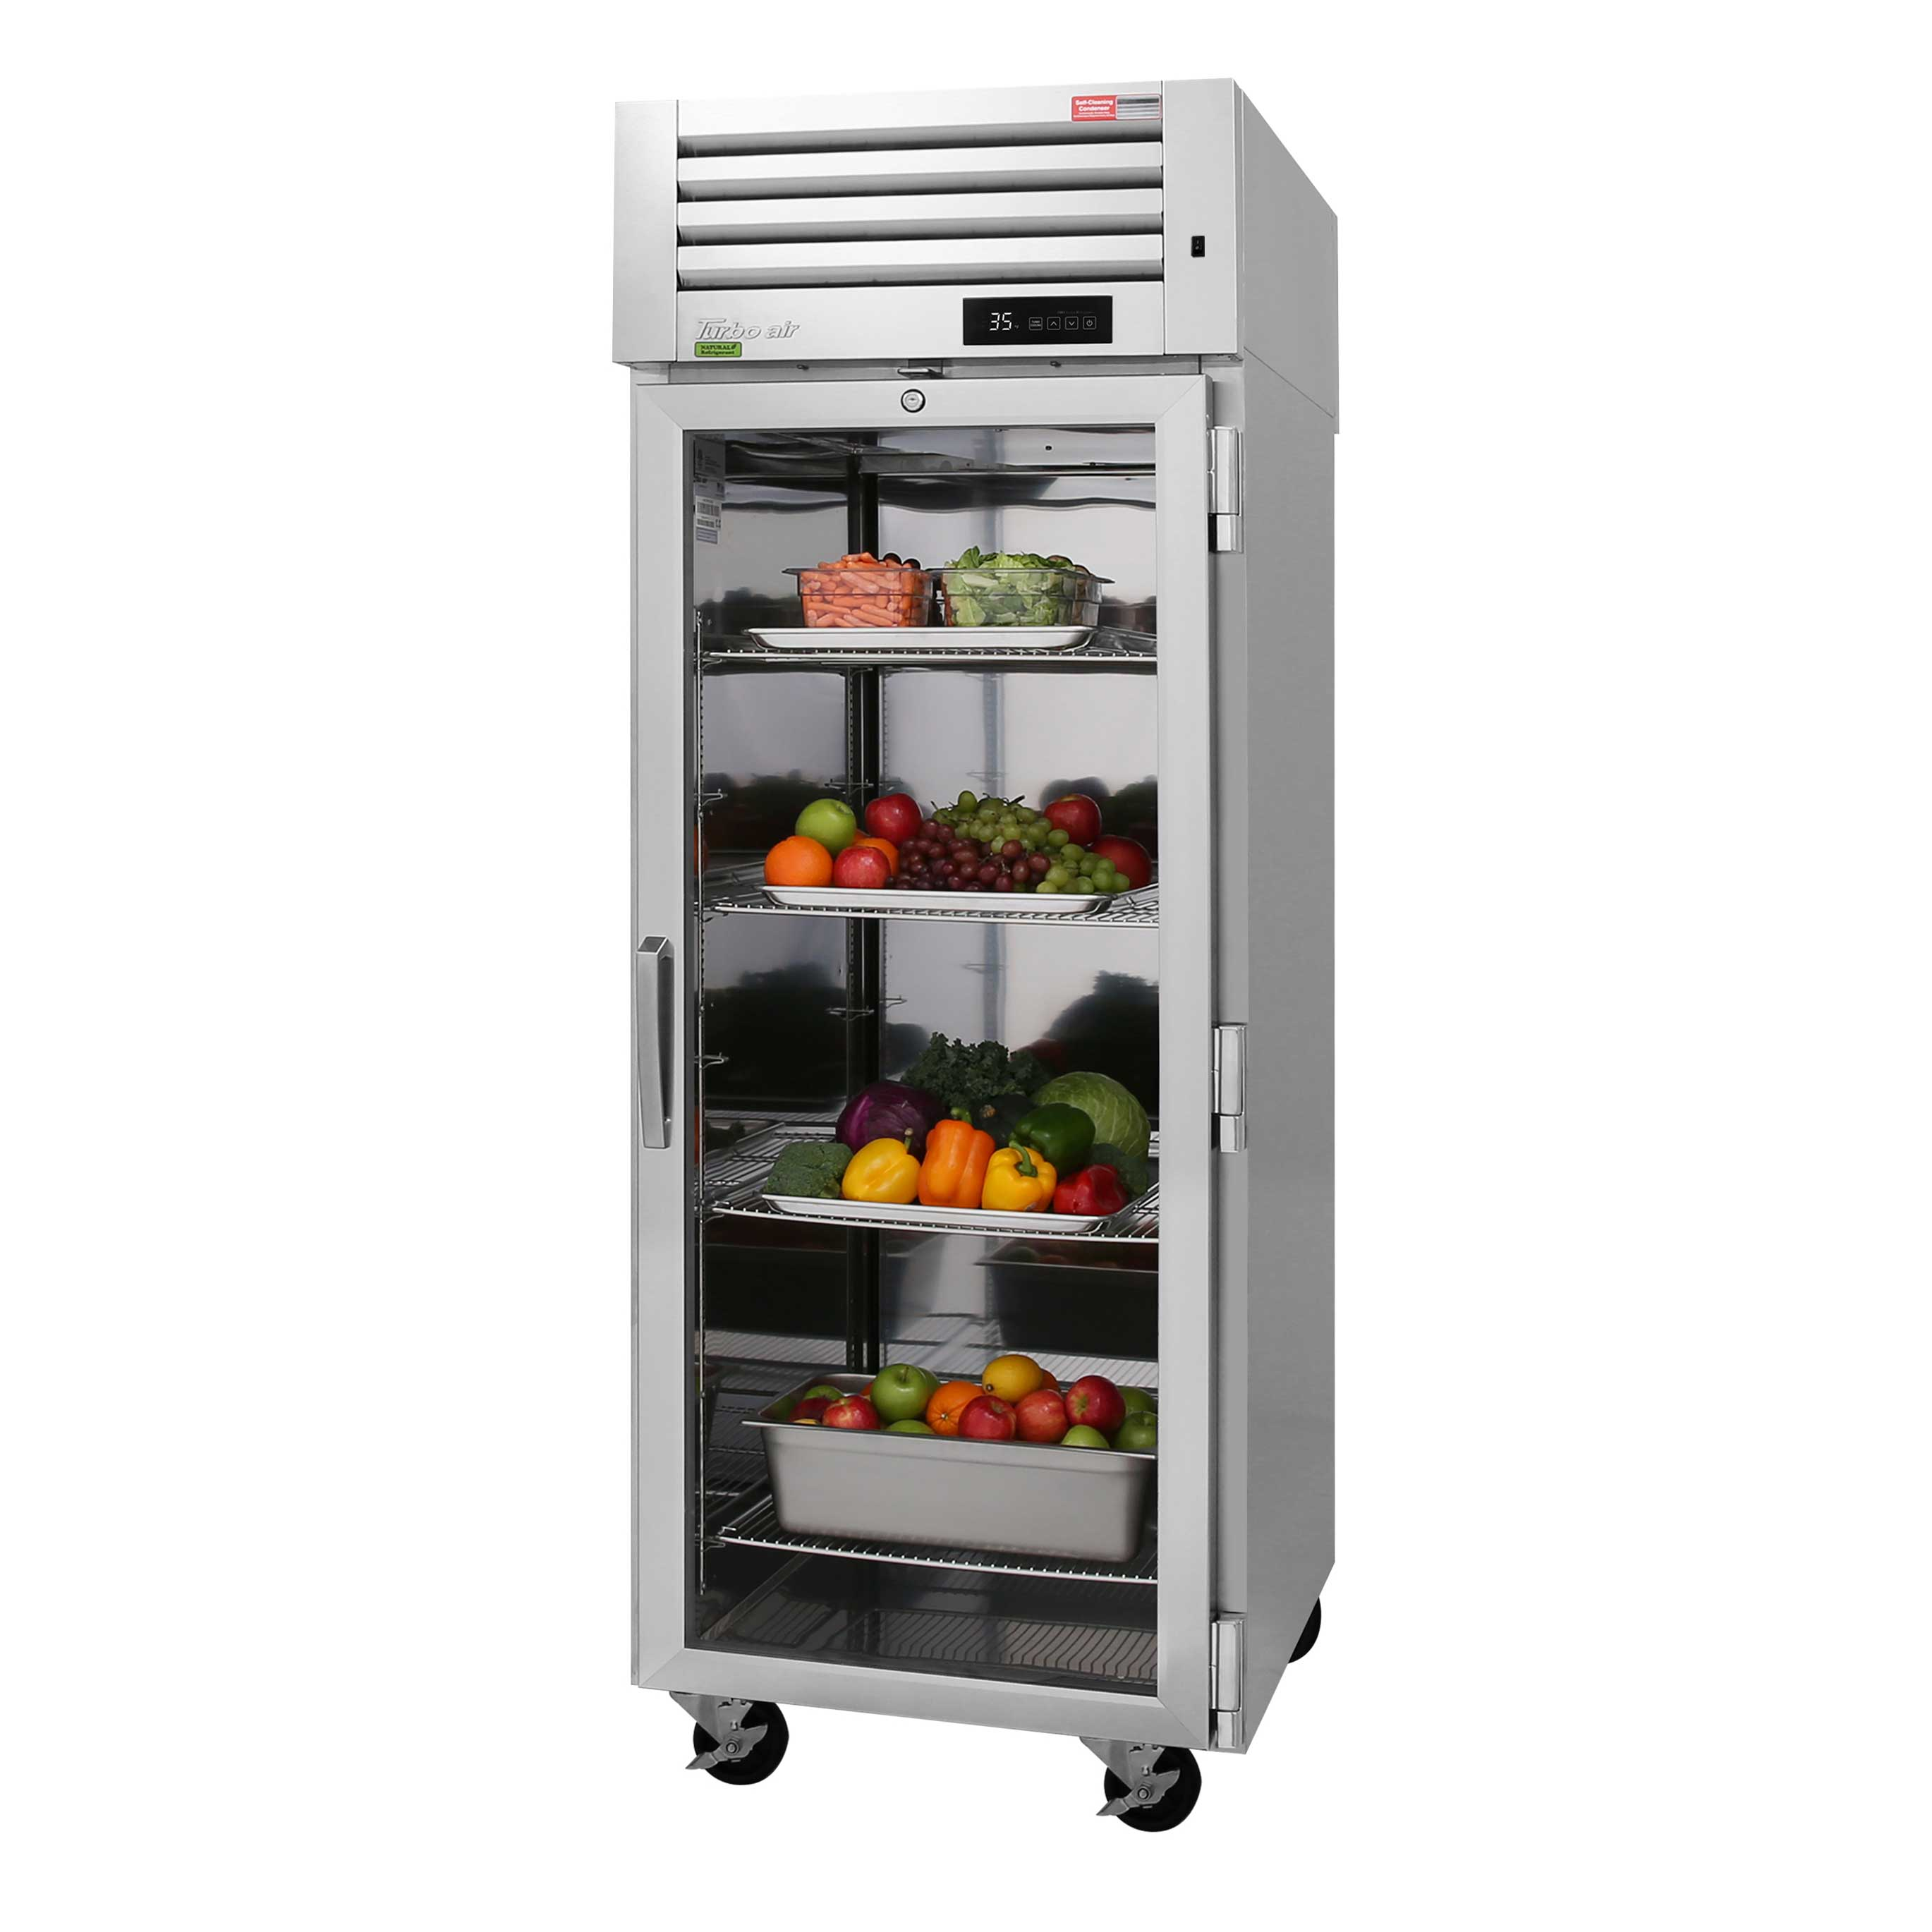 Turbo Air PRO-26R-G-N refrigerator, reach-in